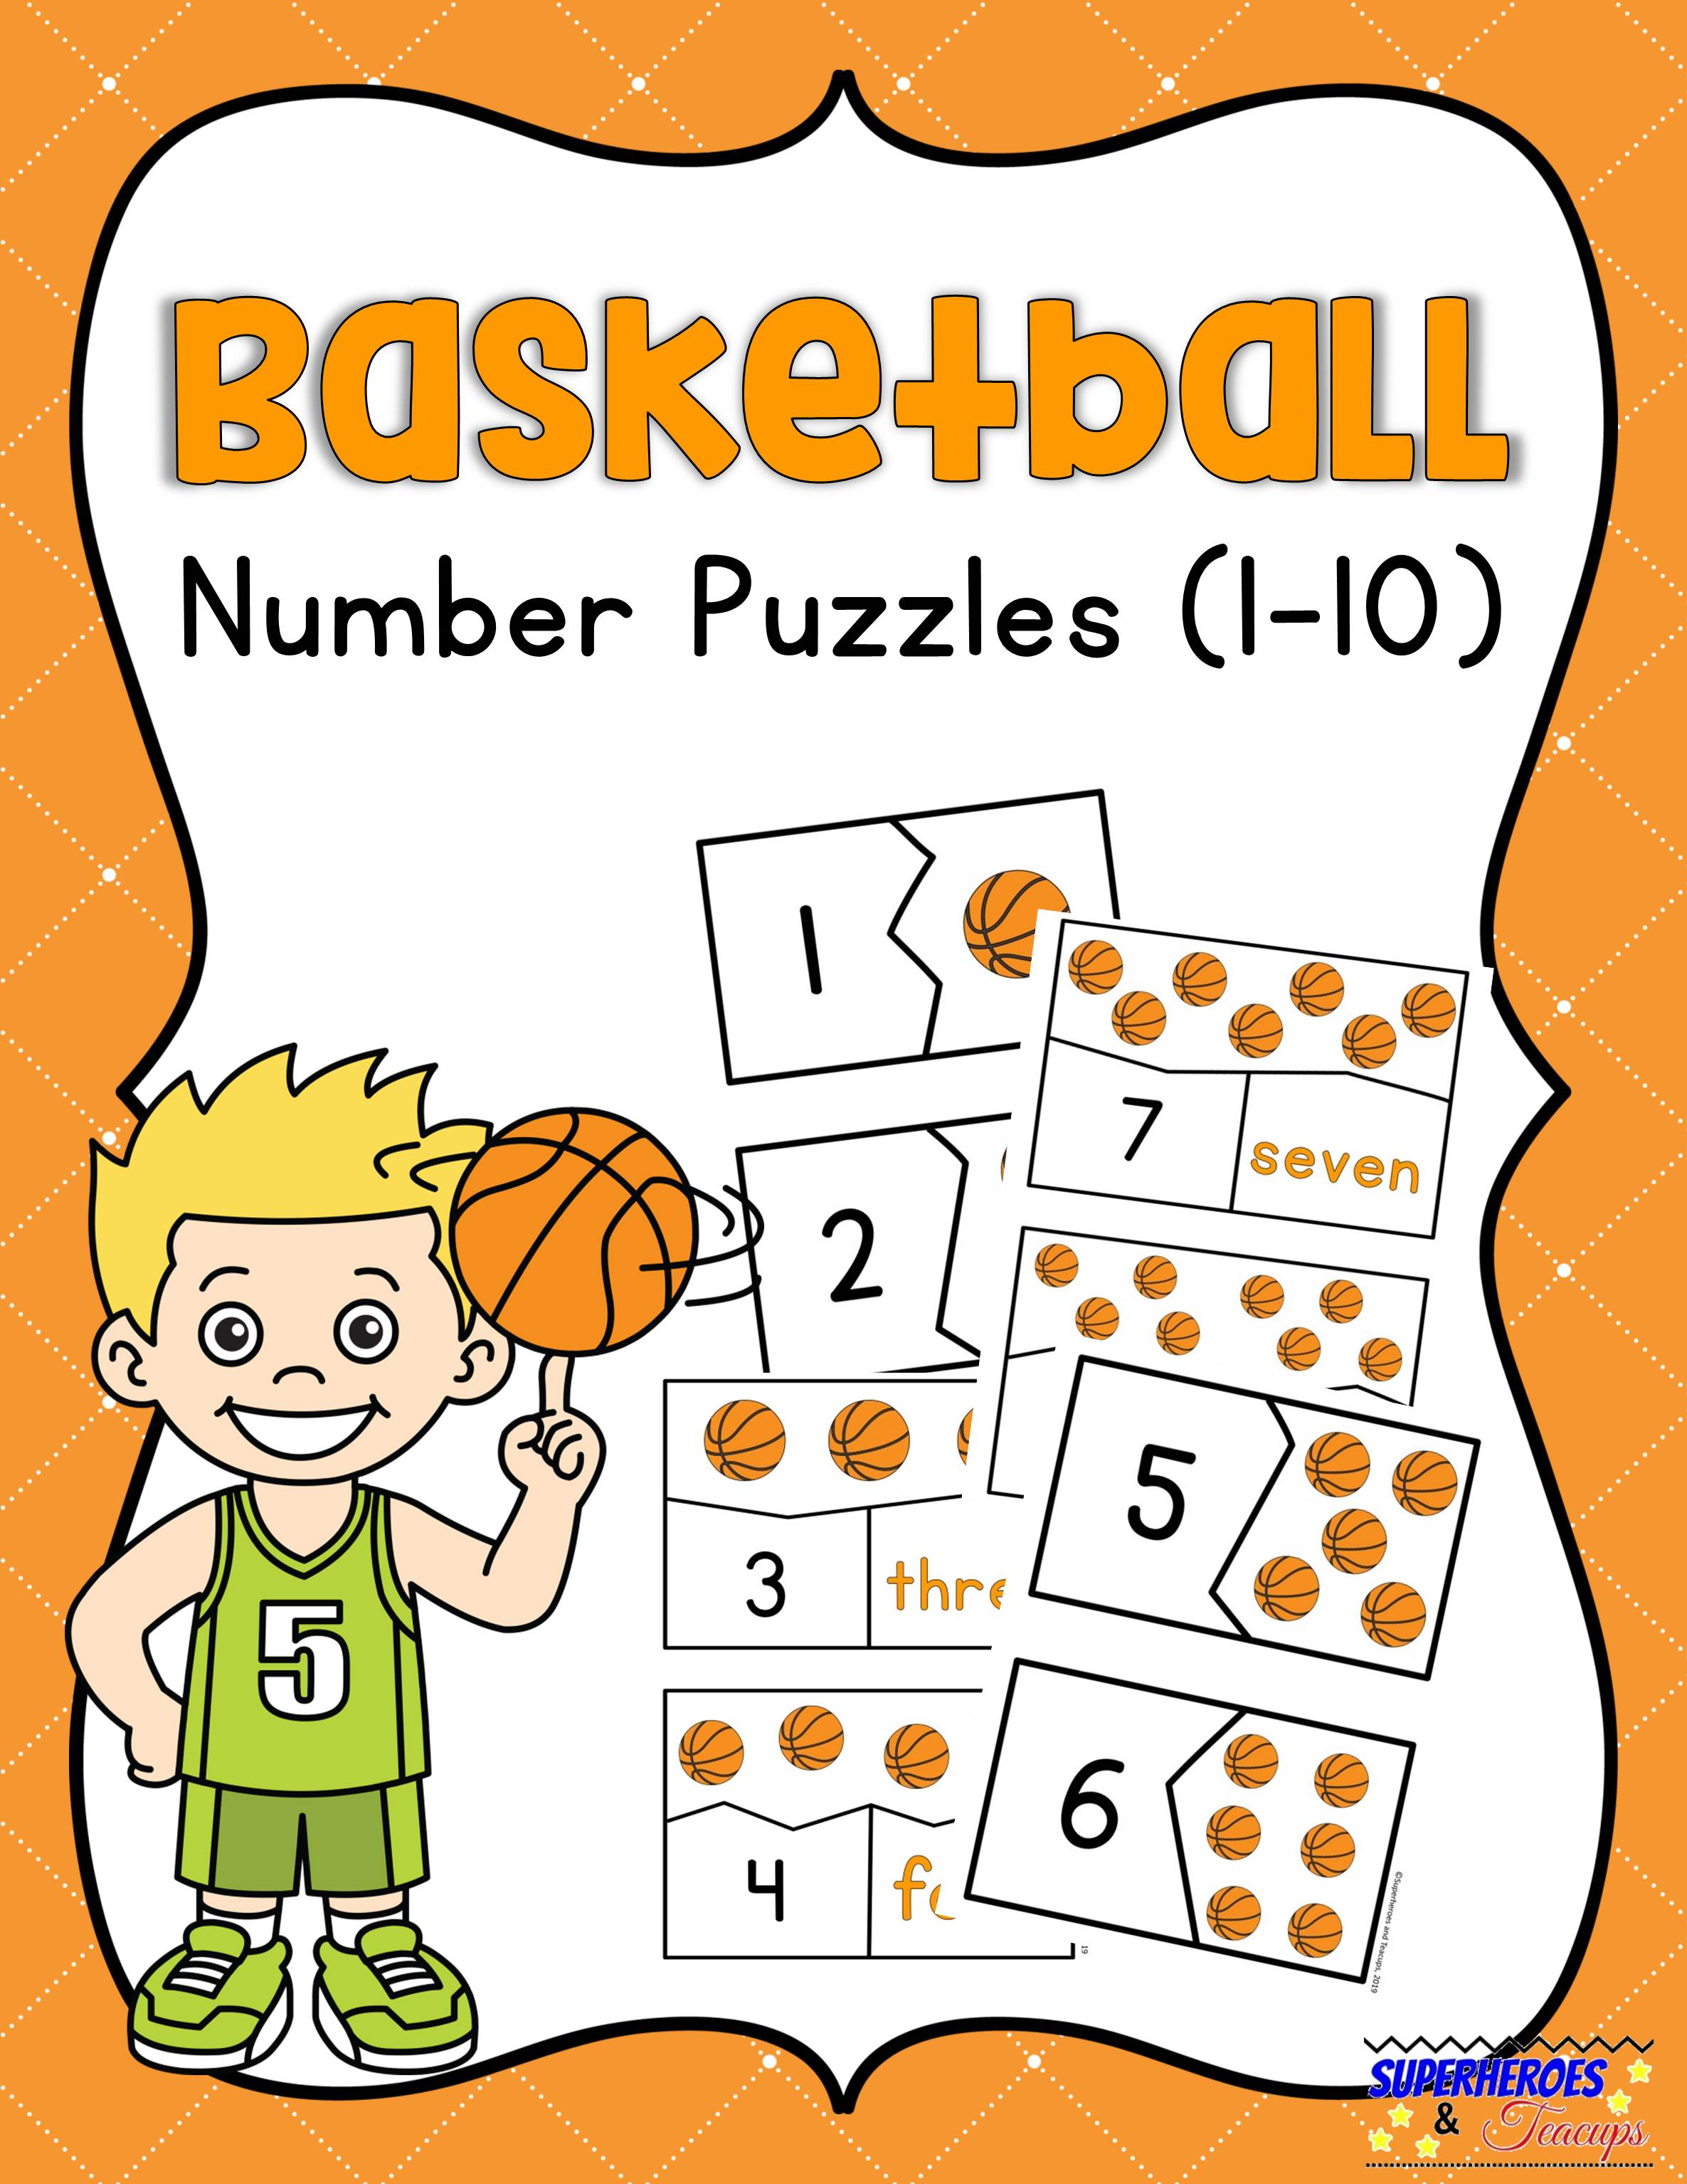 Use these free printable basketball number puzzles with your child to practice counting and numeral/number word recognition. #mathprintables #basketballprintables #basketballmath #freeprintables #superheroesandteacups